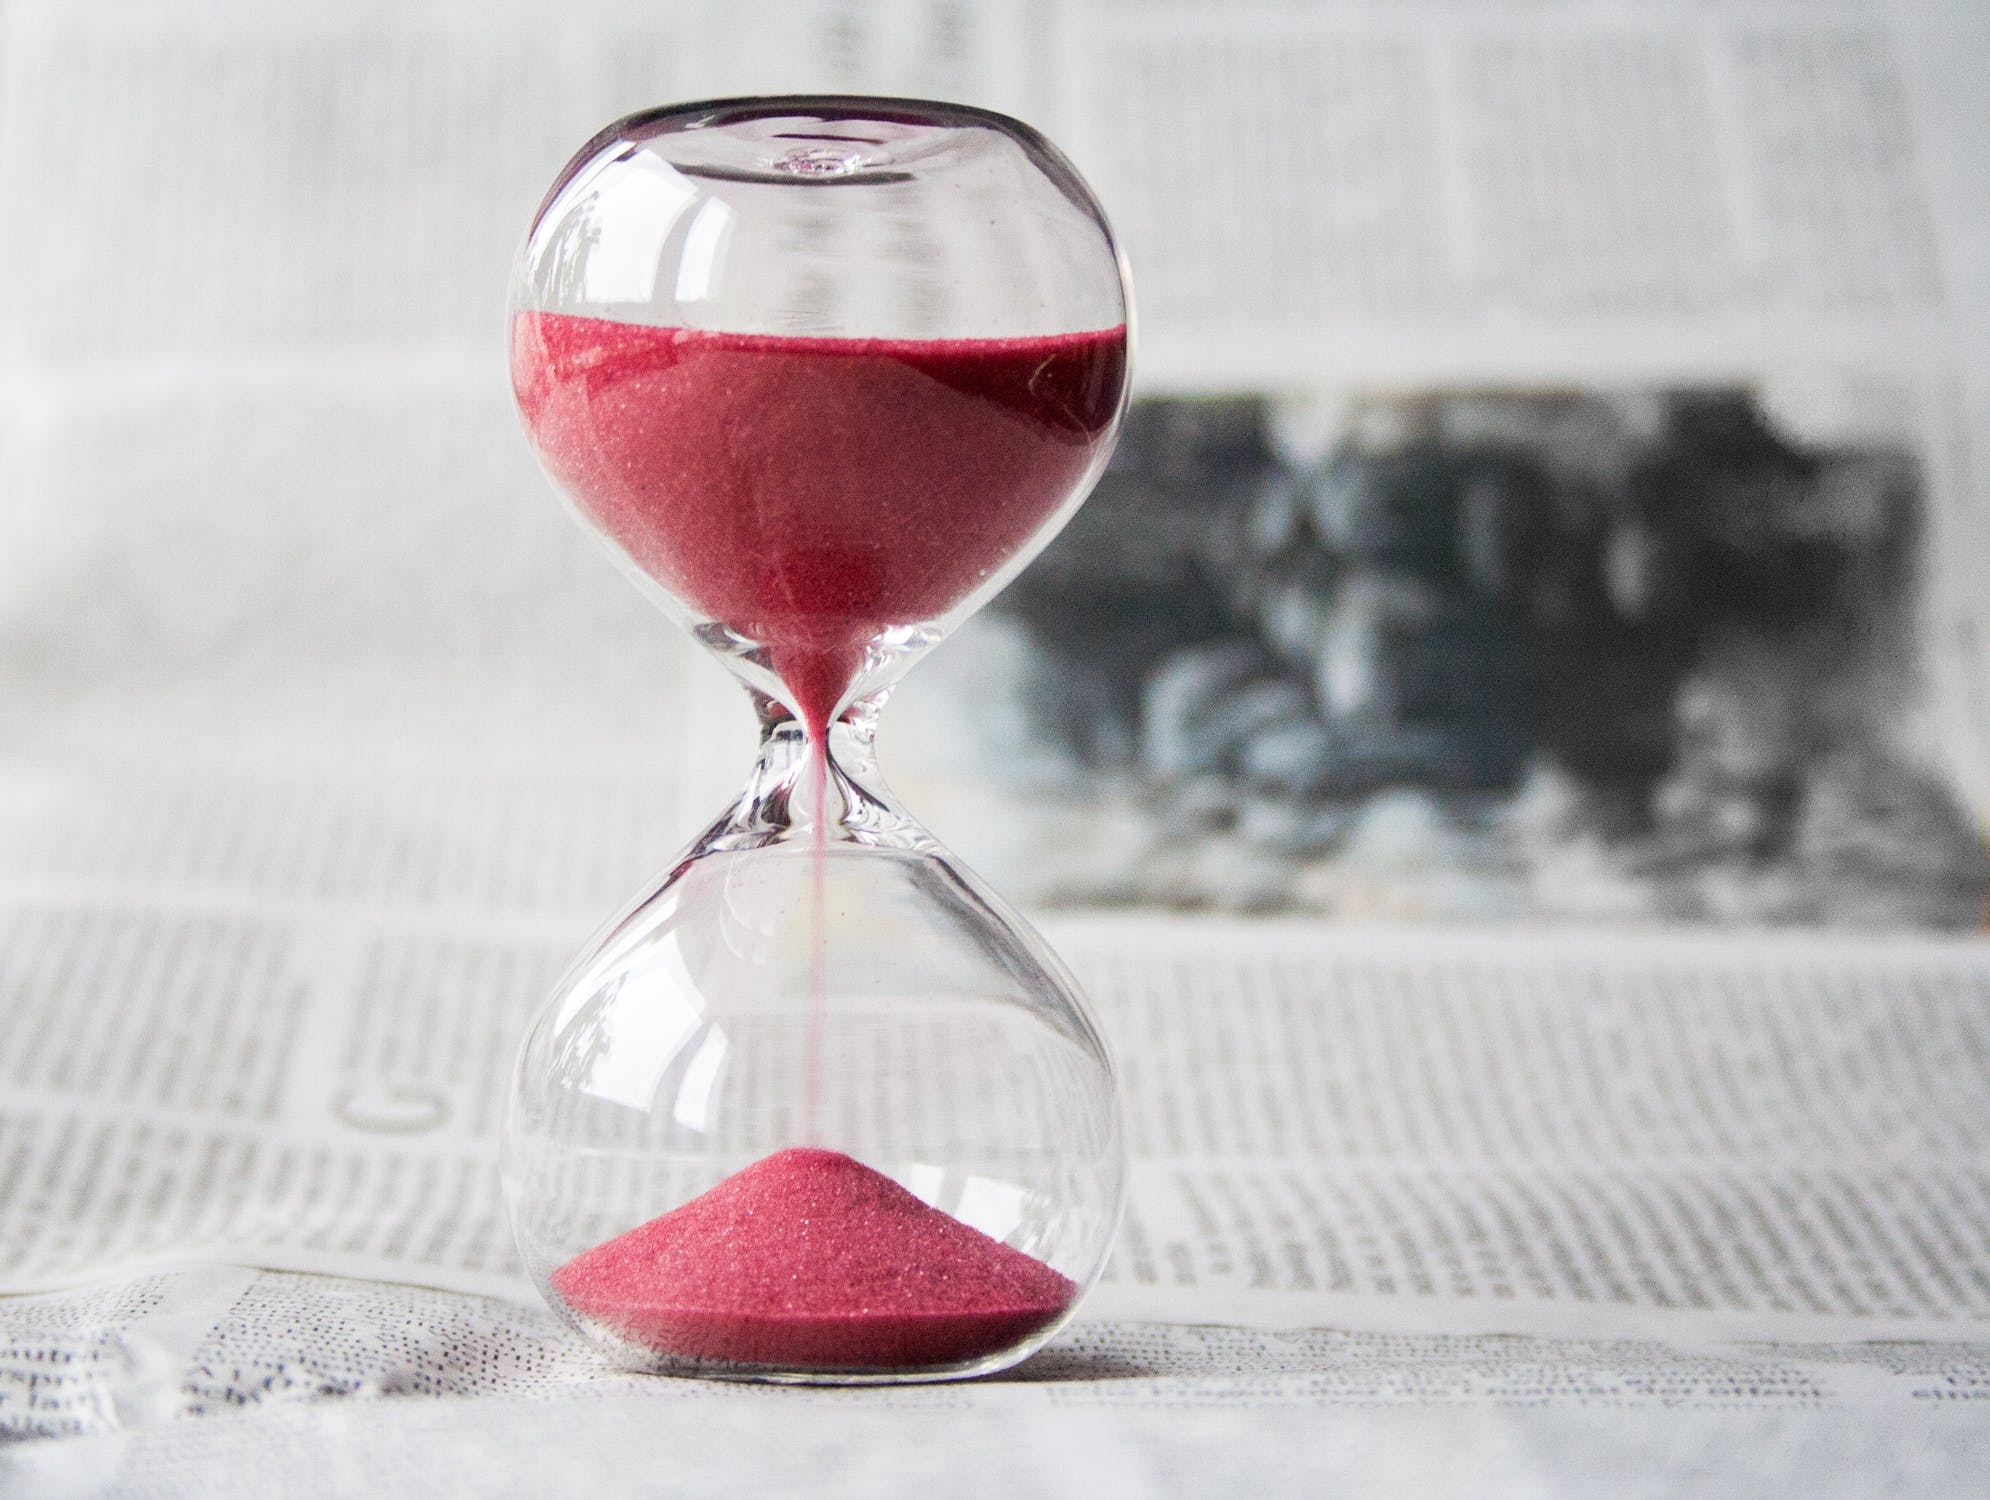 An hourglass - because time is an important factor when buying your first home in Miami.